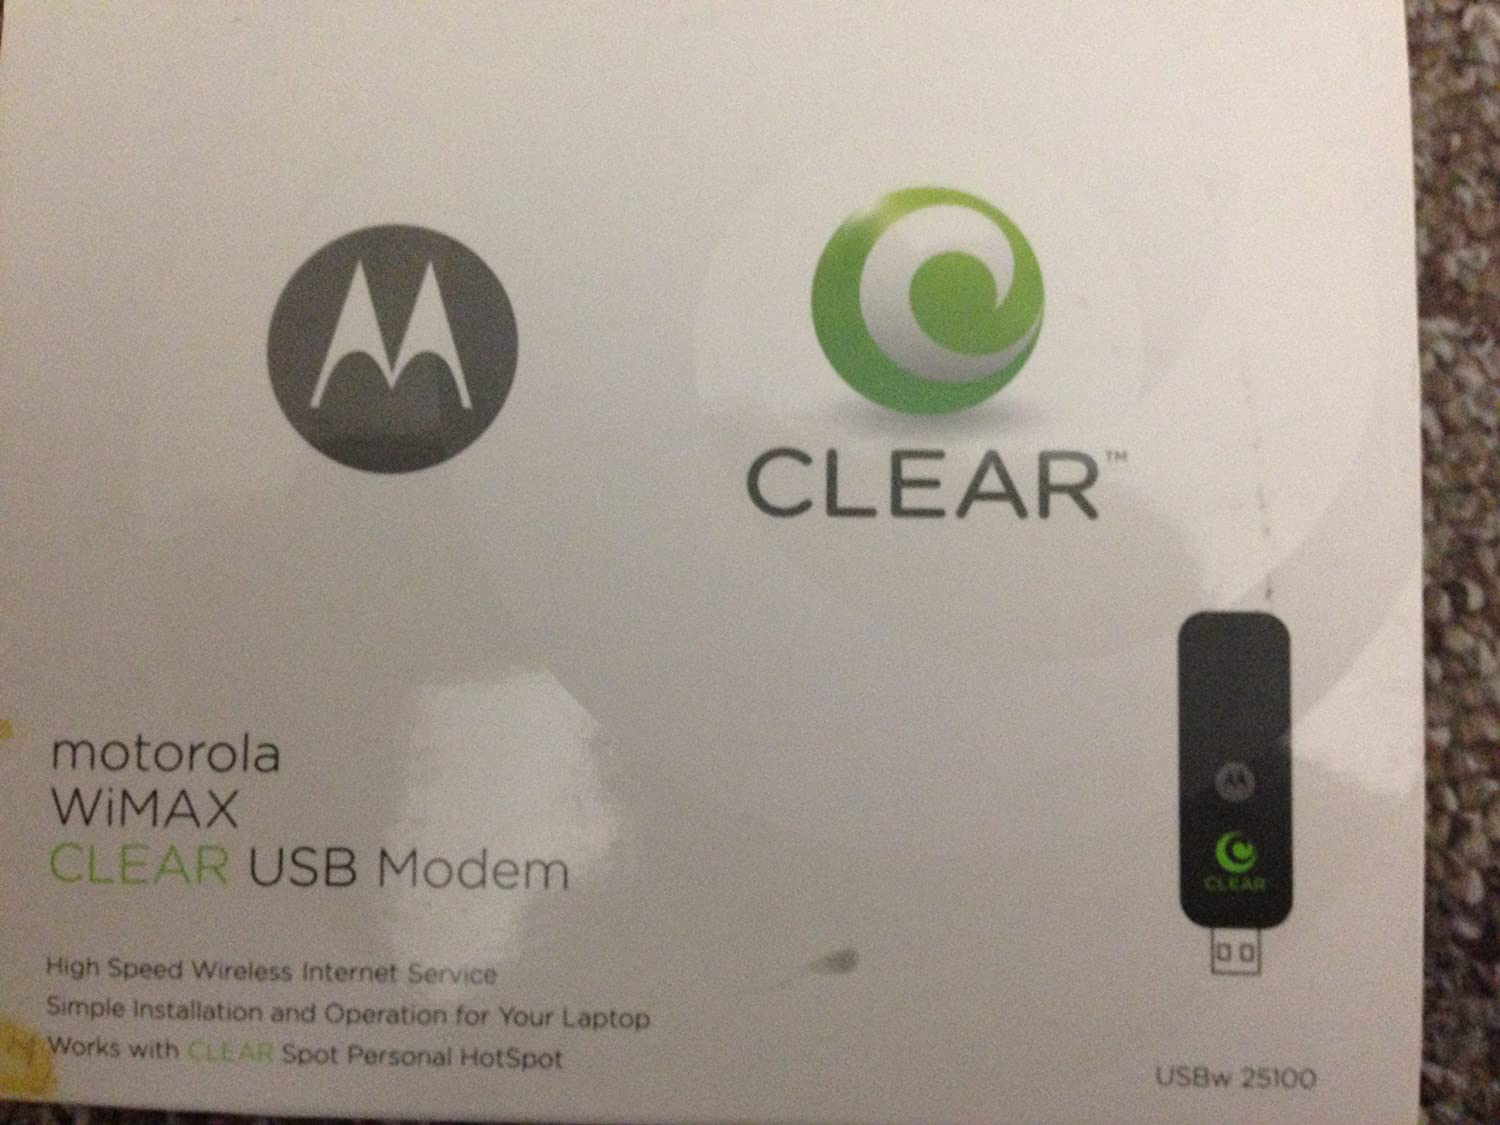 MOTOROLA WIMAX USB ADAPTOR USBW 35100 DRIVERS DOWNLOAD FREE